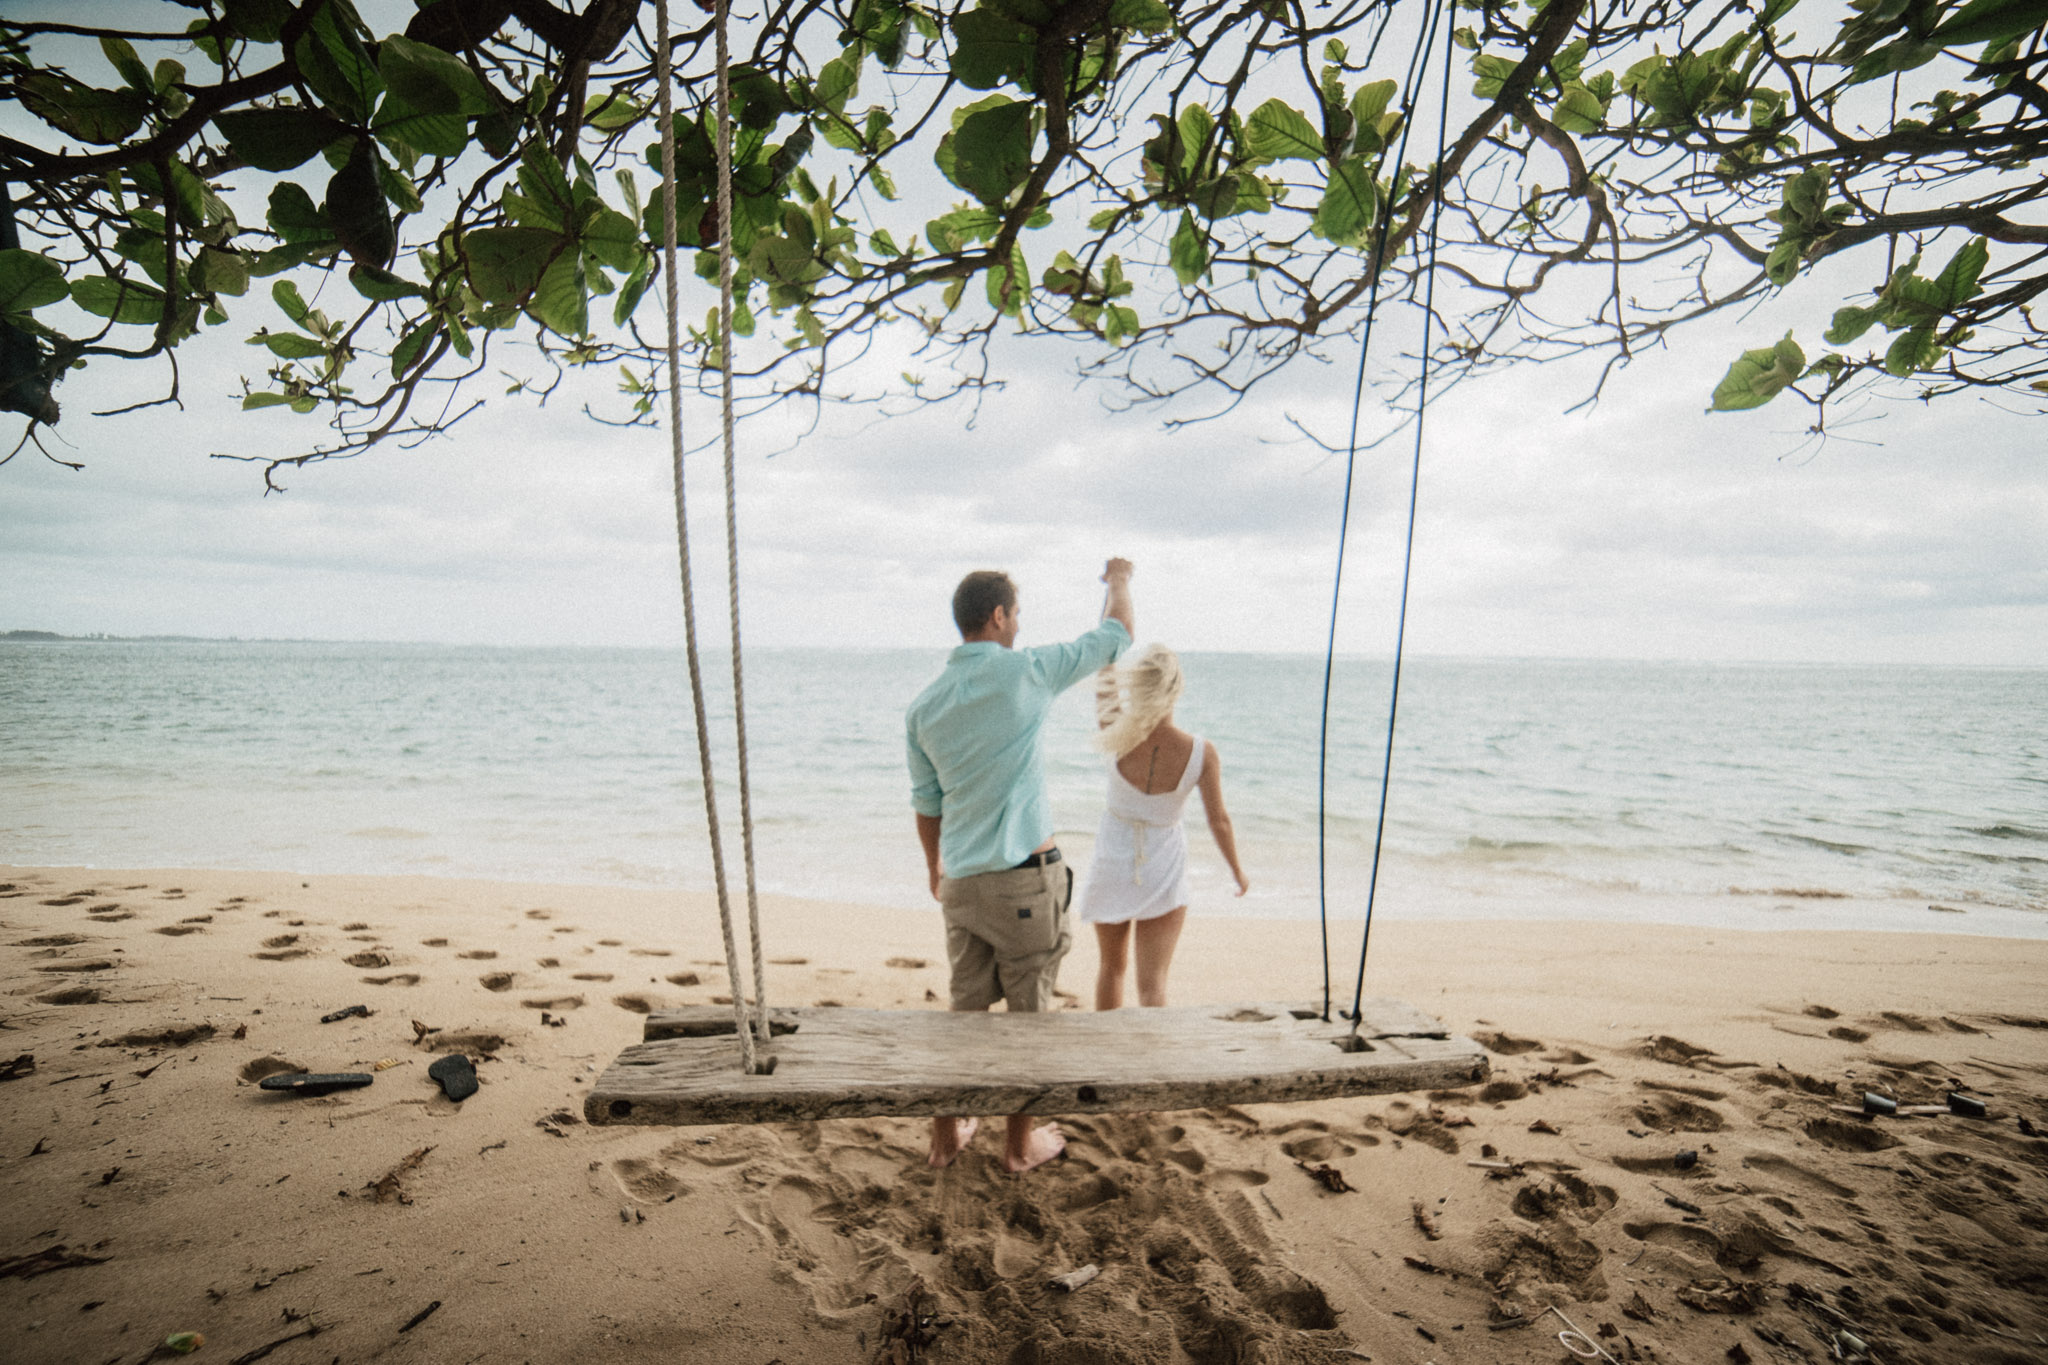 will and Jenny on a swing in Hawaii